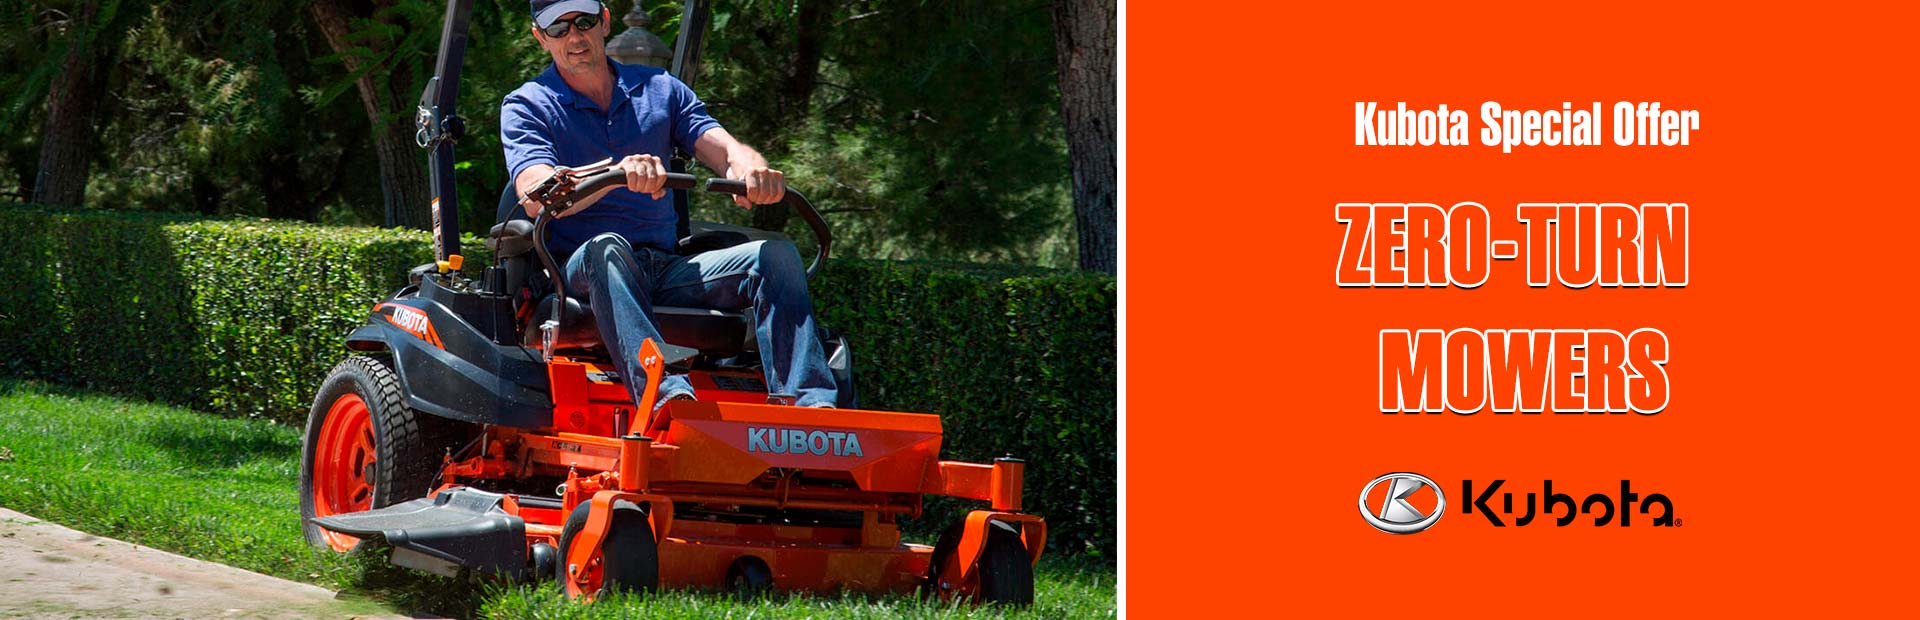 Kubota Special Offer - Zero-Turn Mowers